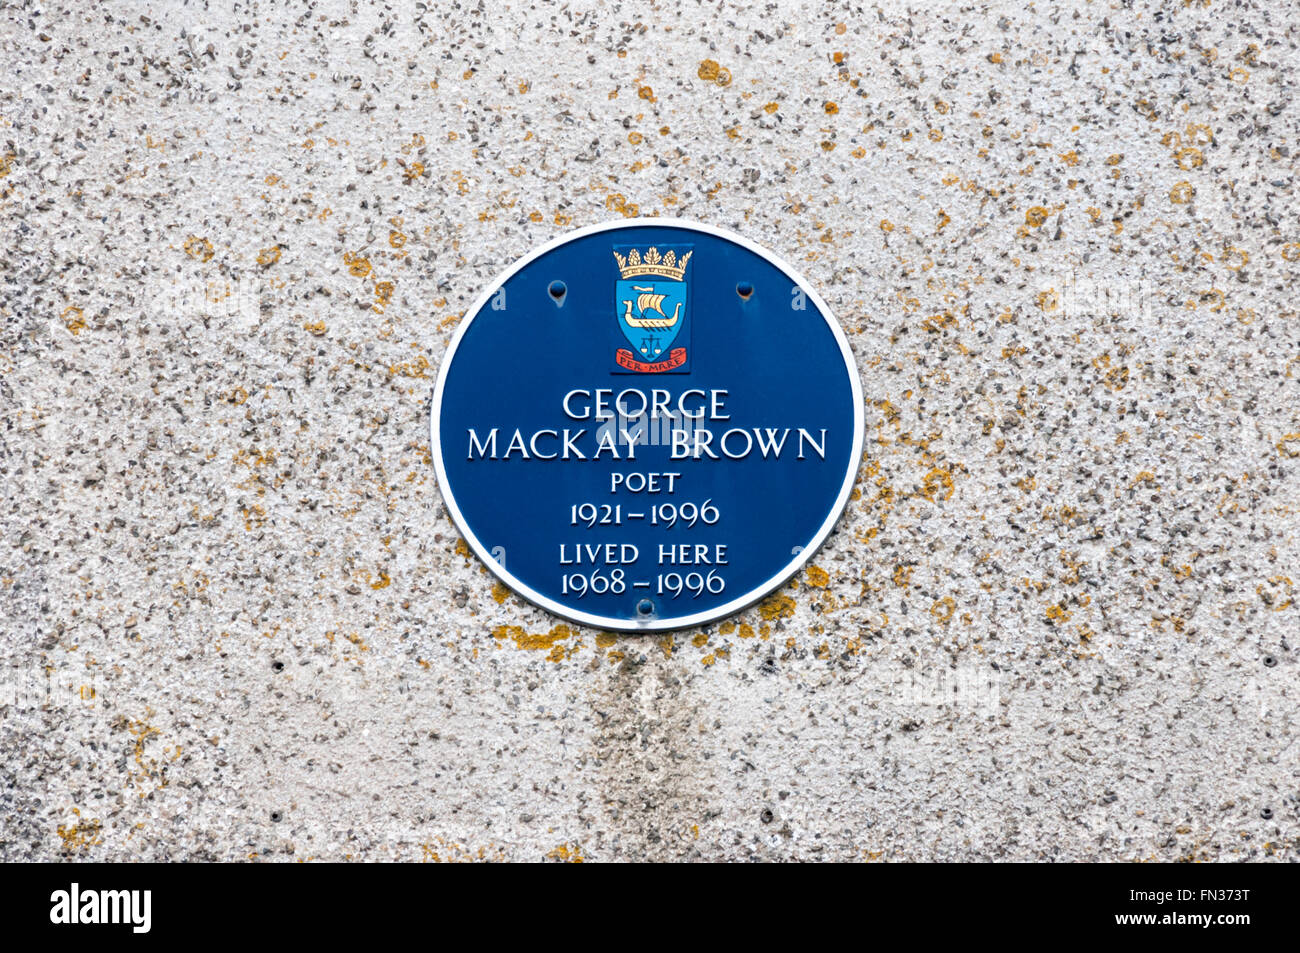 A plaque in Stromness, commemorates the poet George Mackay Brown who was born and lived there. - Stock Image